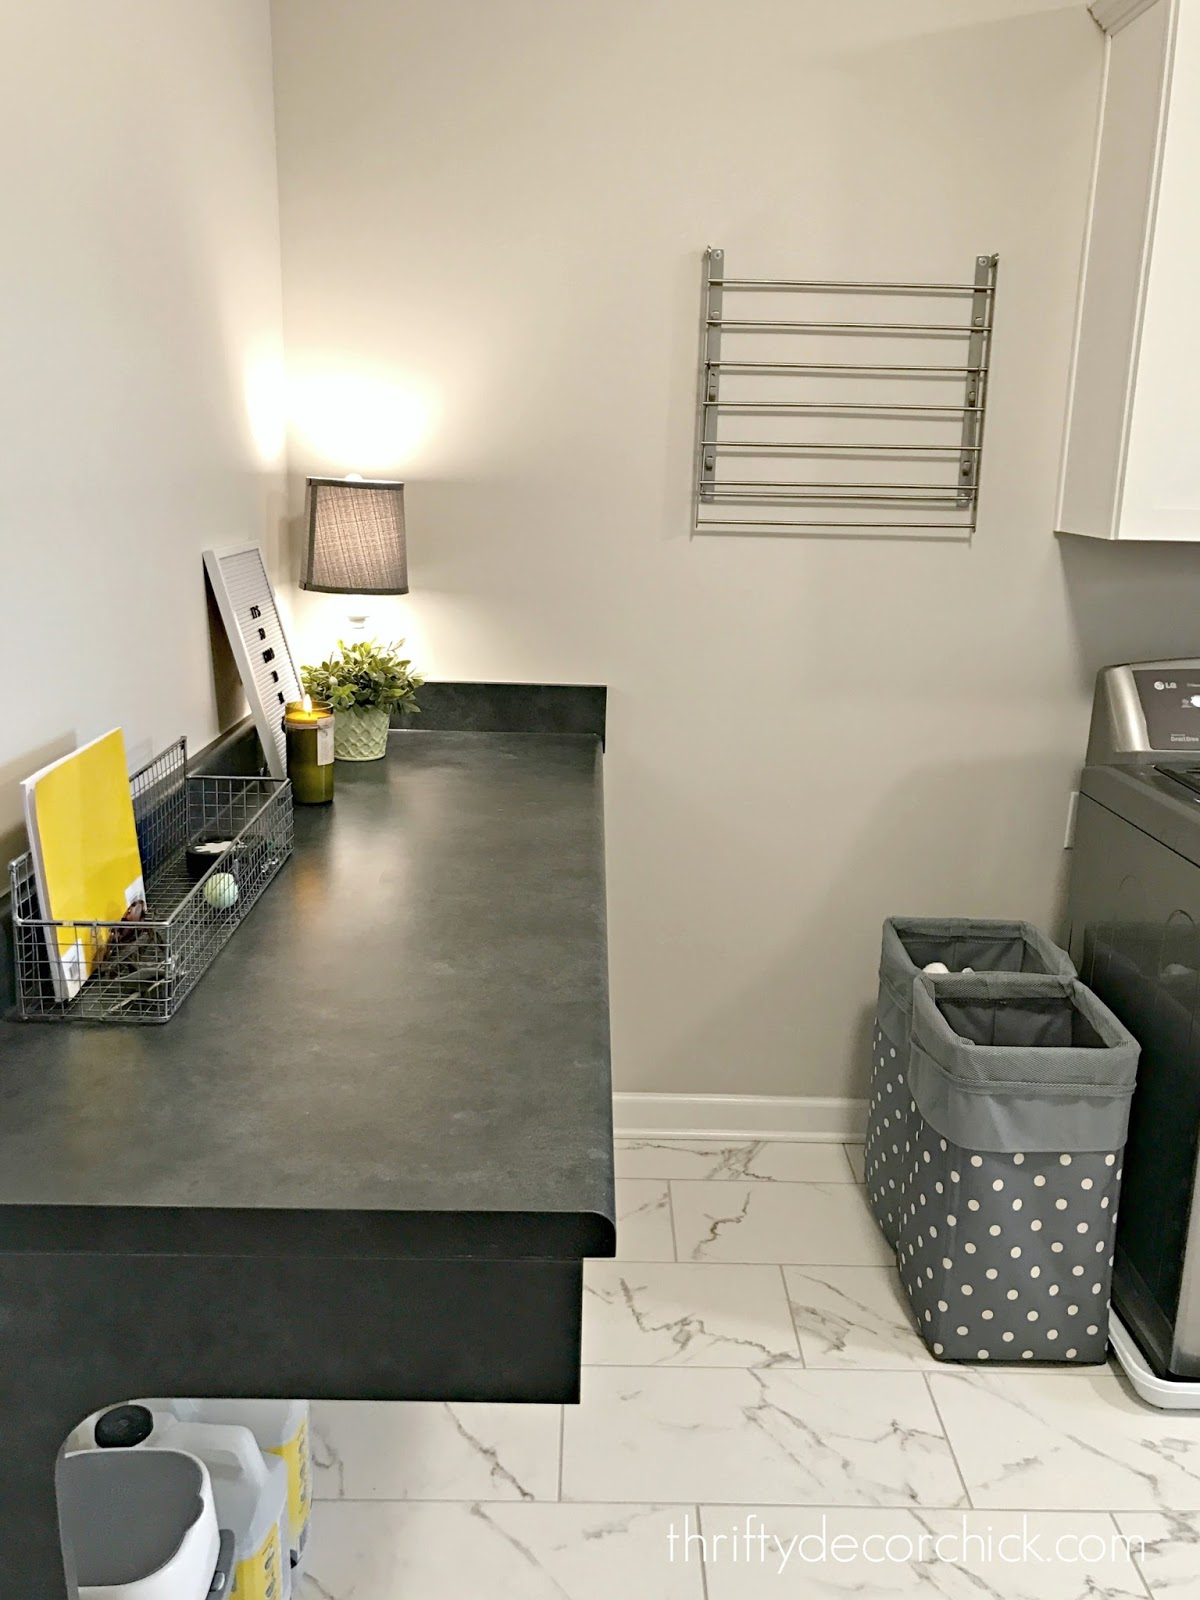 Folding table in laundry room